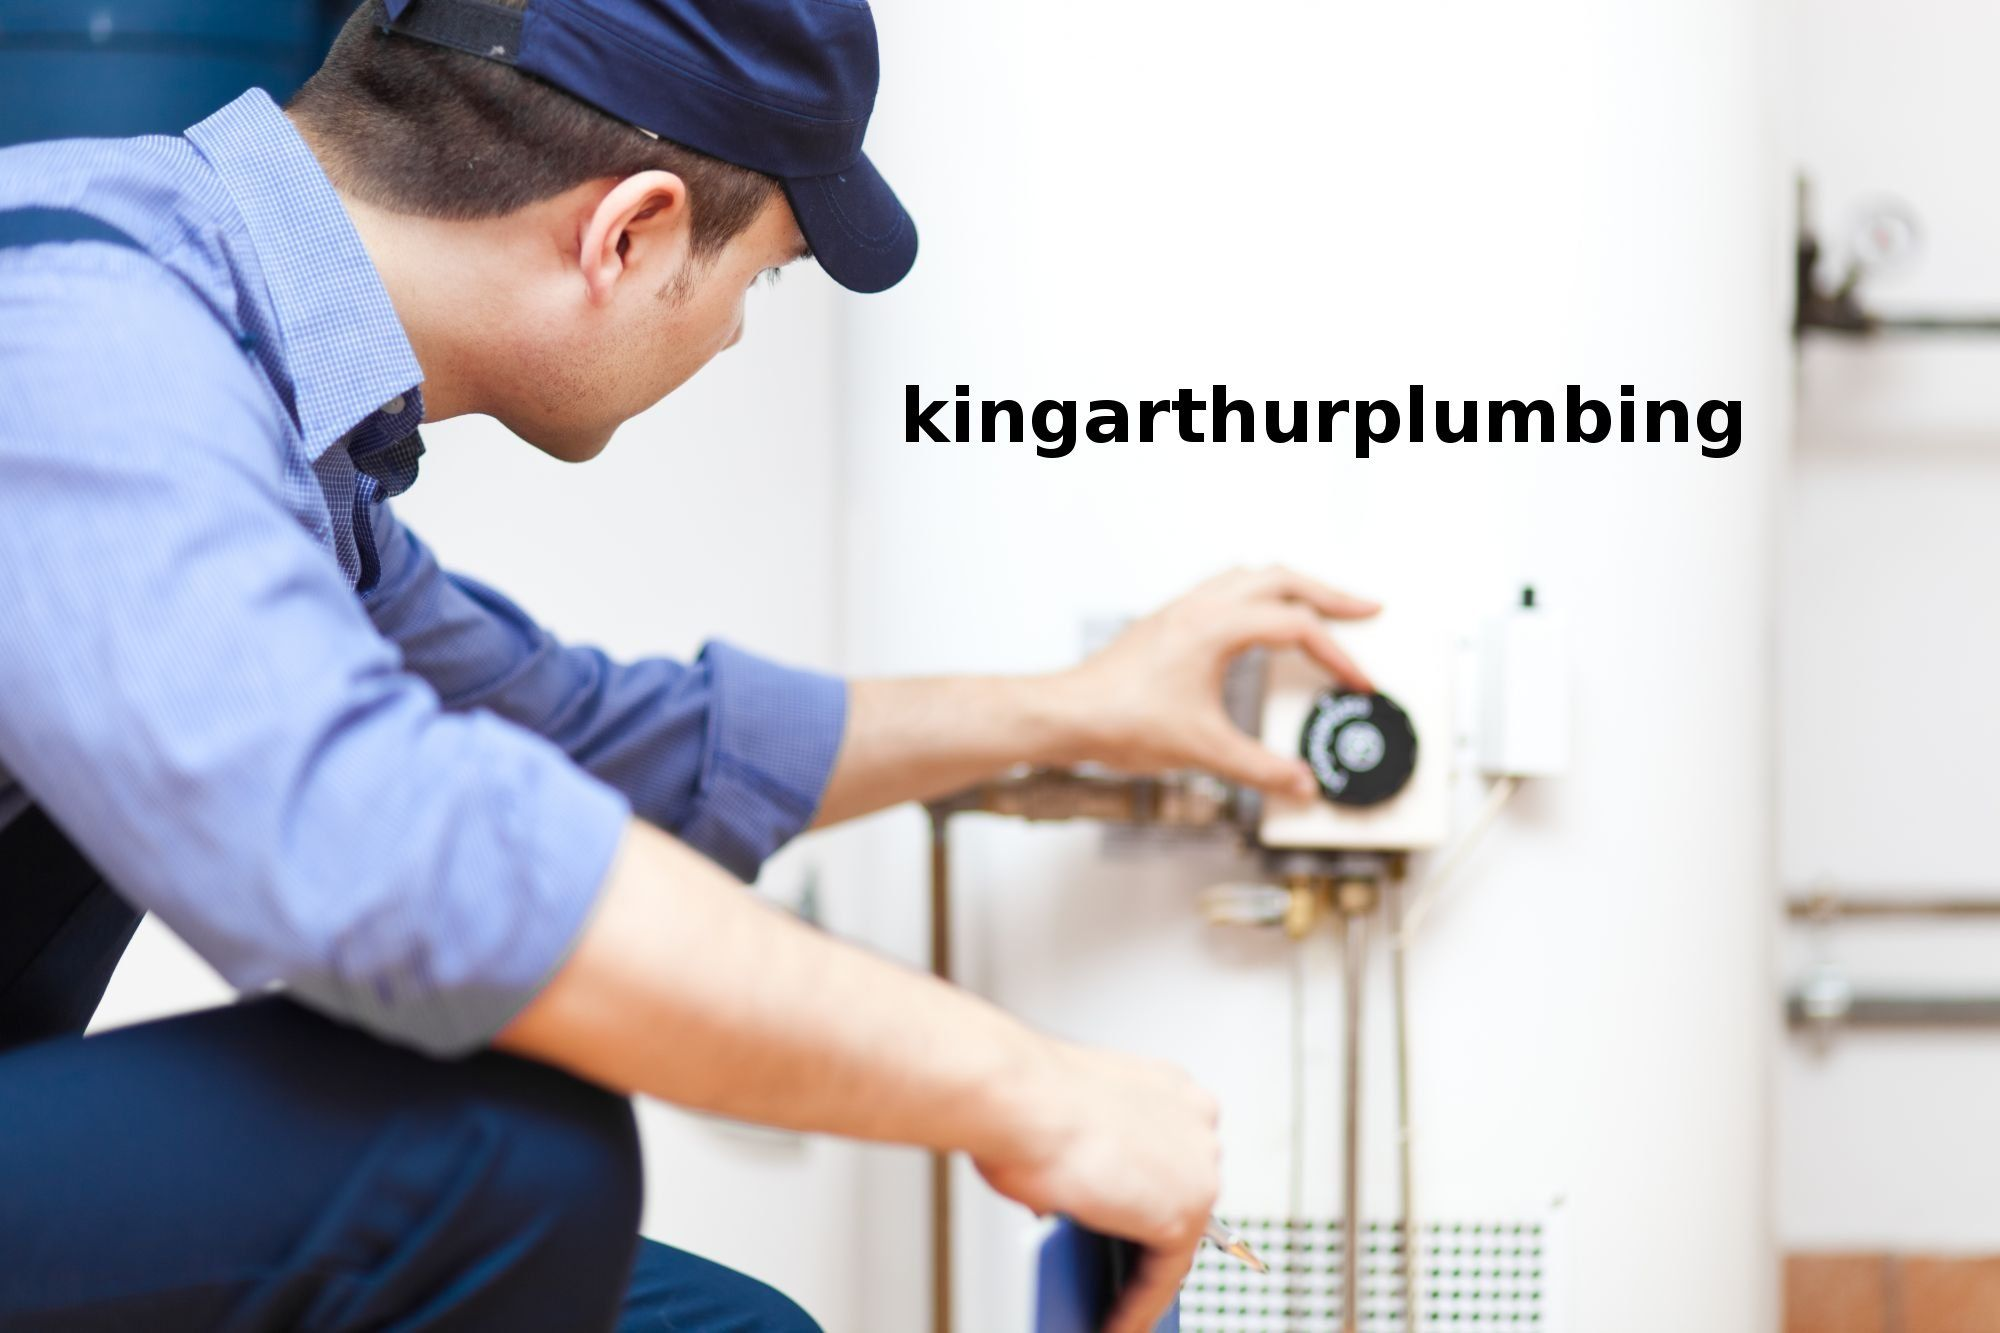 King Arthur Plumbing are fully licensed and qualified to